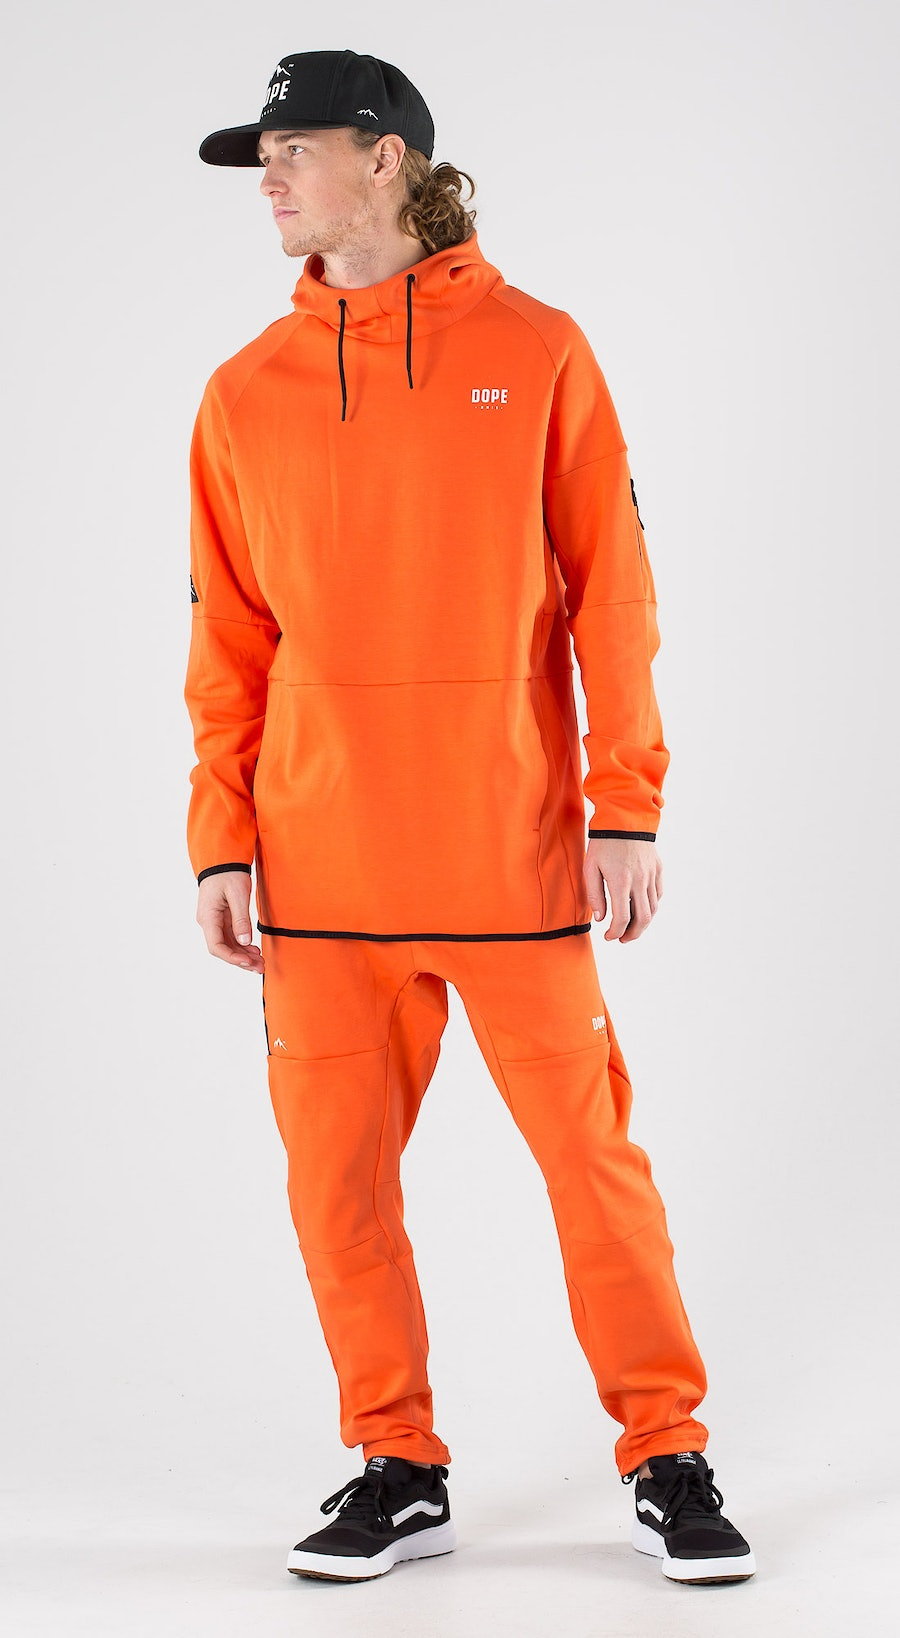 Dope Ronin 2X-UP Orange Outfit Multi